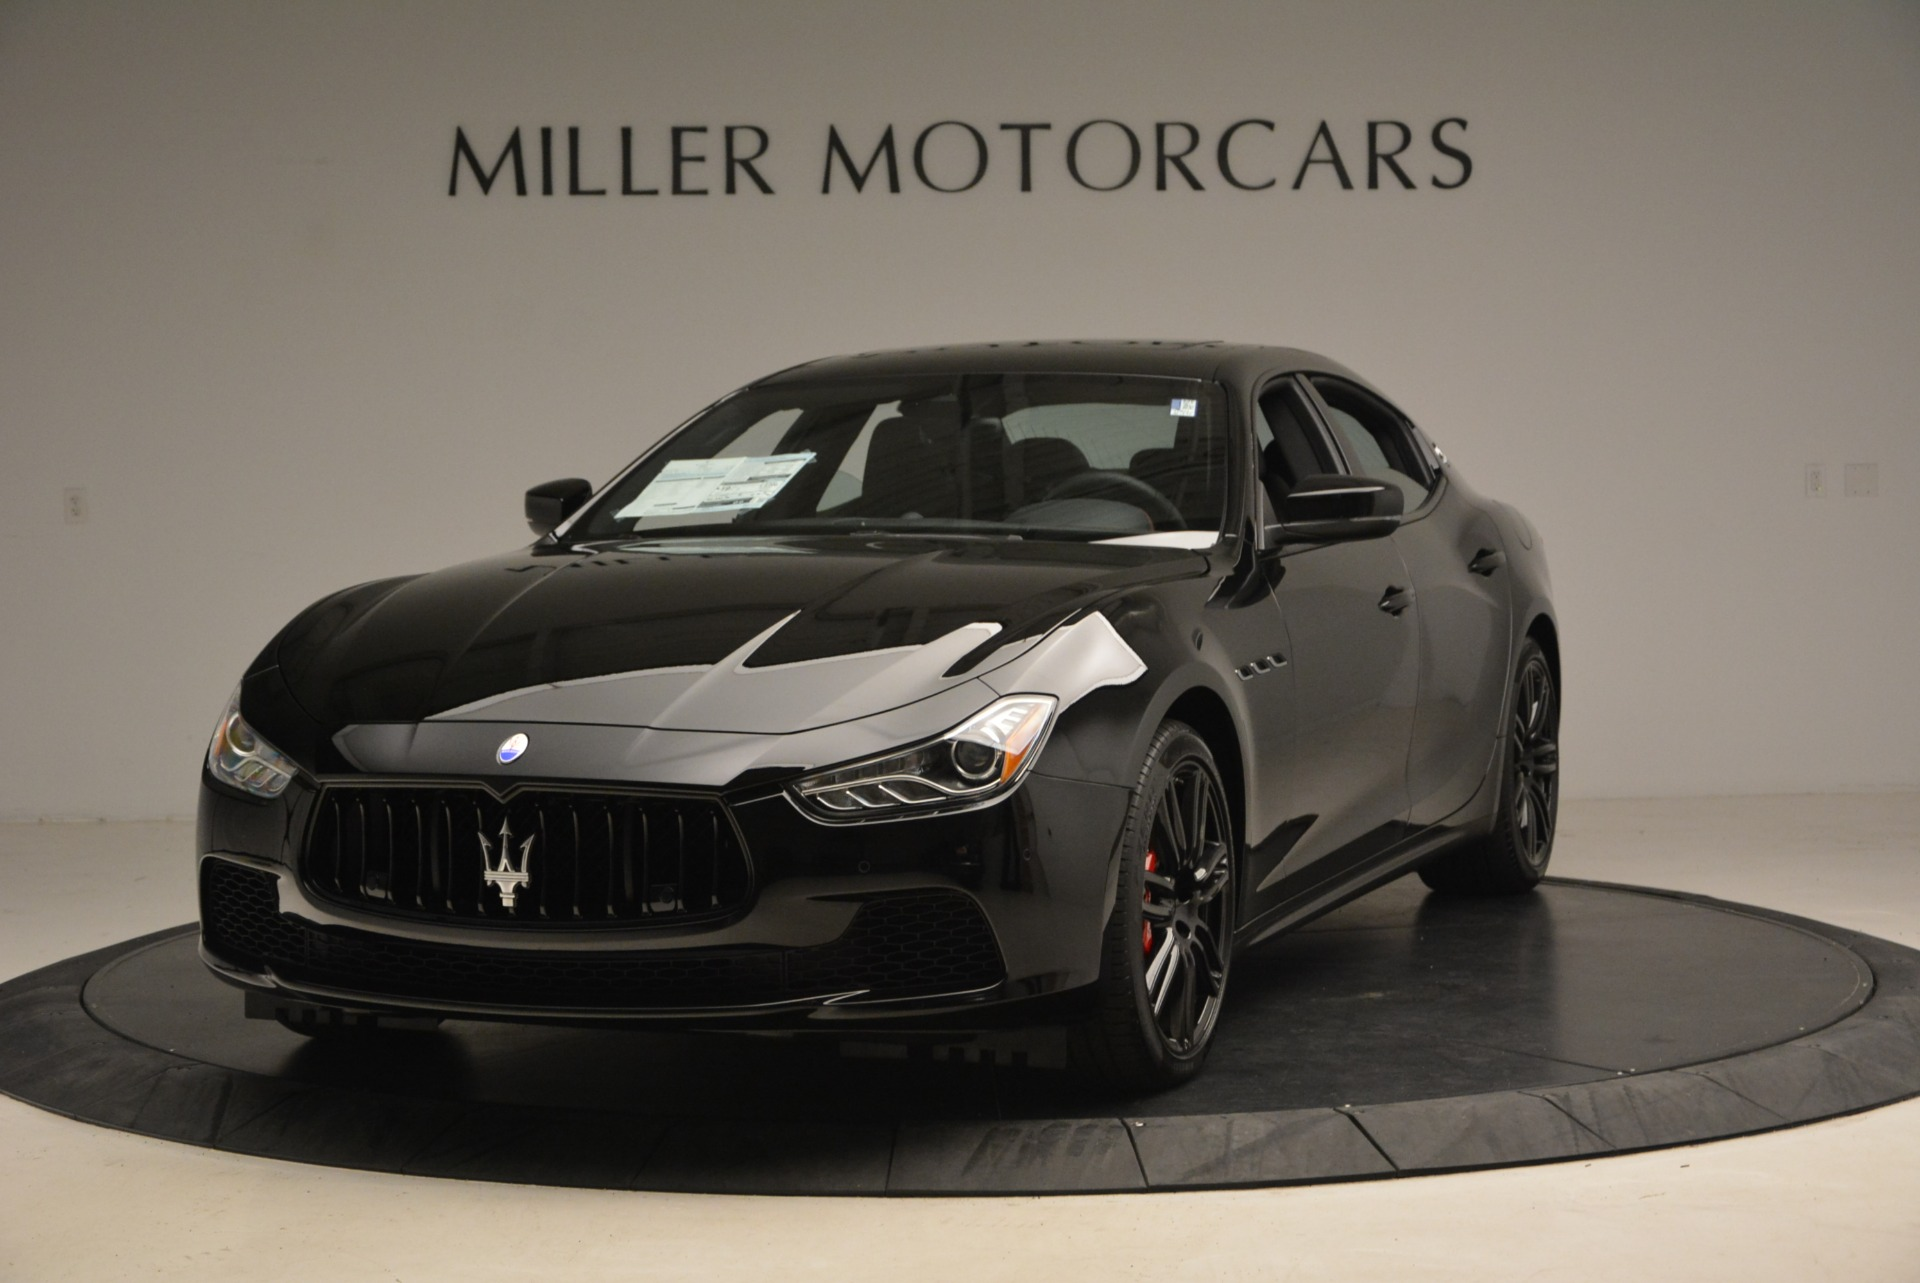 New 2017 Maserati Ghibli Nerissimo Edition S Q4 For Sale In Greenwich, CT 1405_main